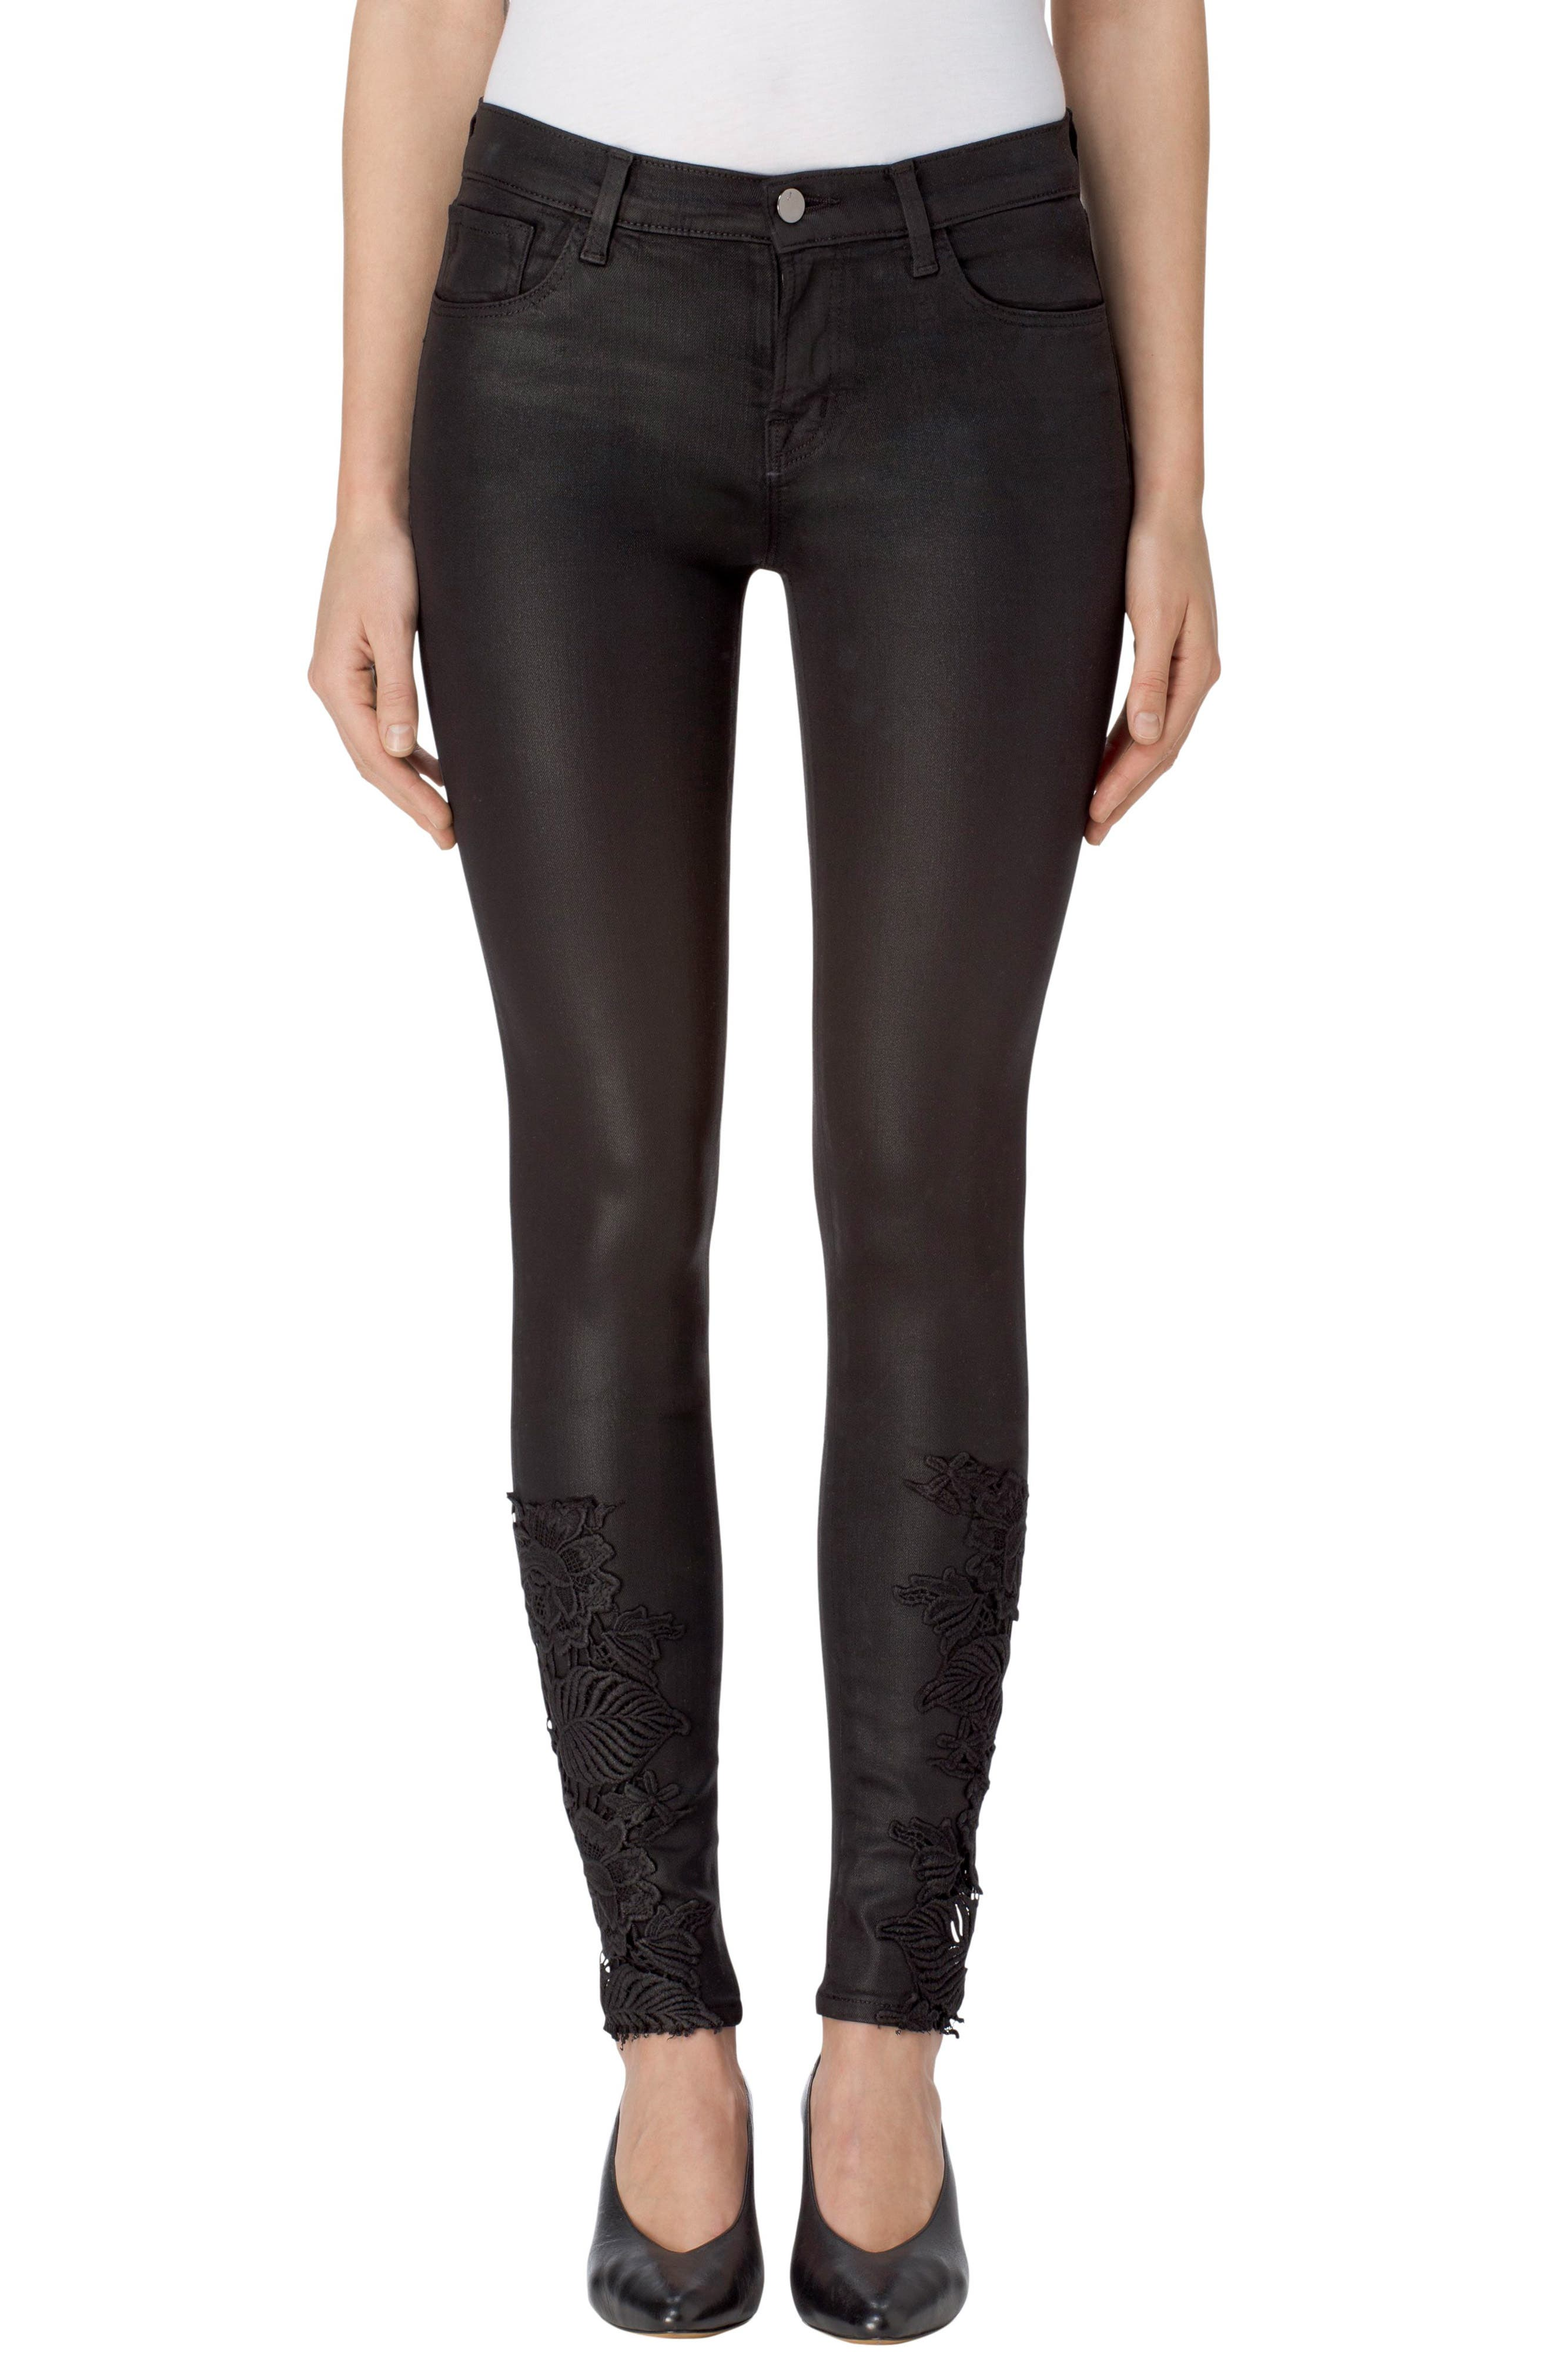 Alternate Image 1 Selected - J Brand 620 Mid Rise Super Skinny Jeans (Coated Black Lace)